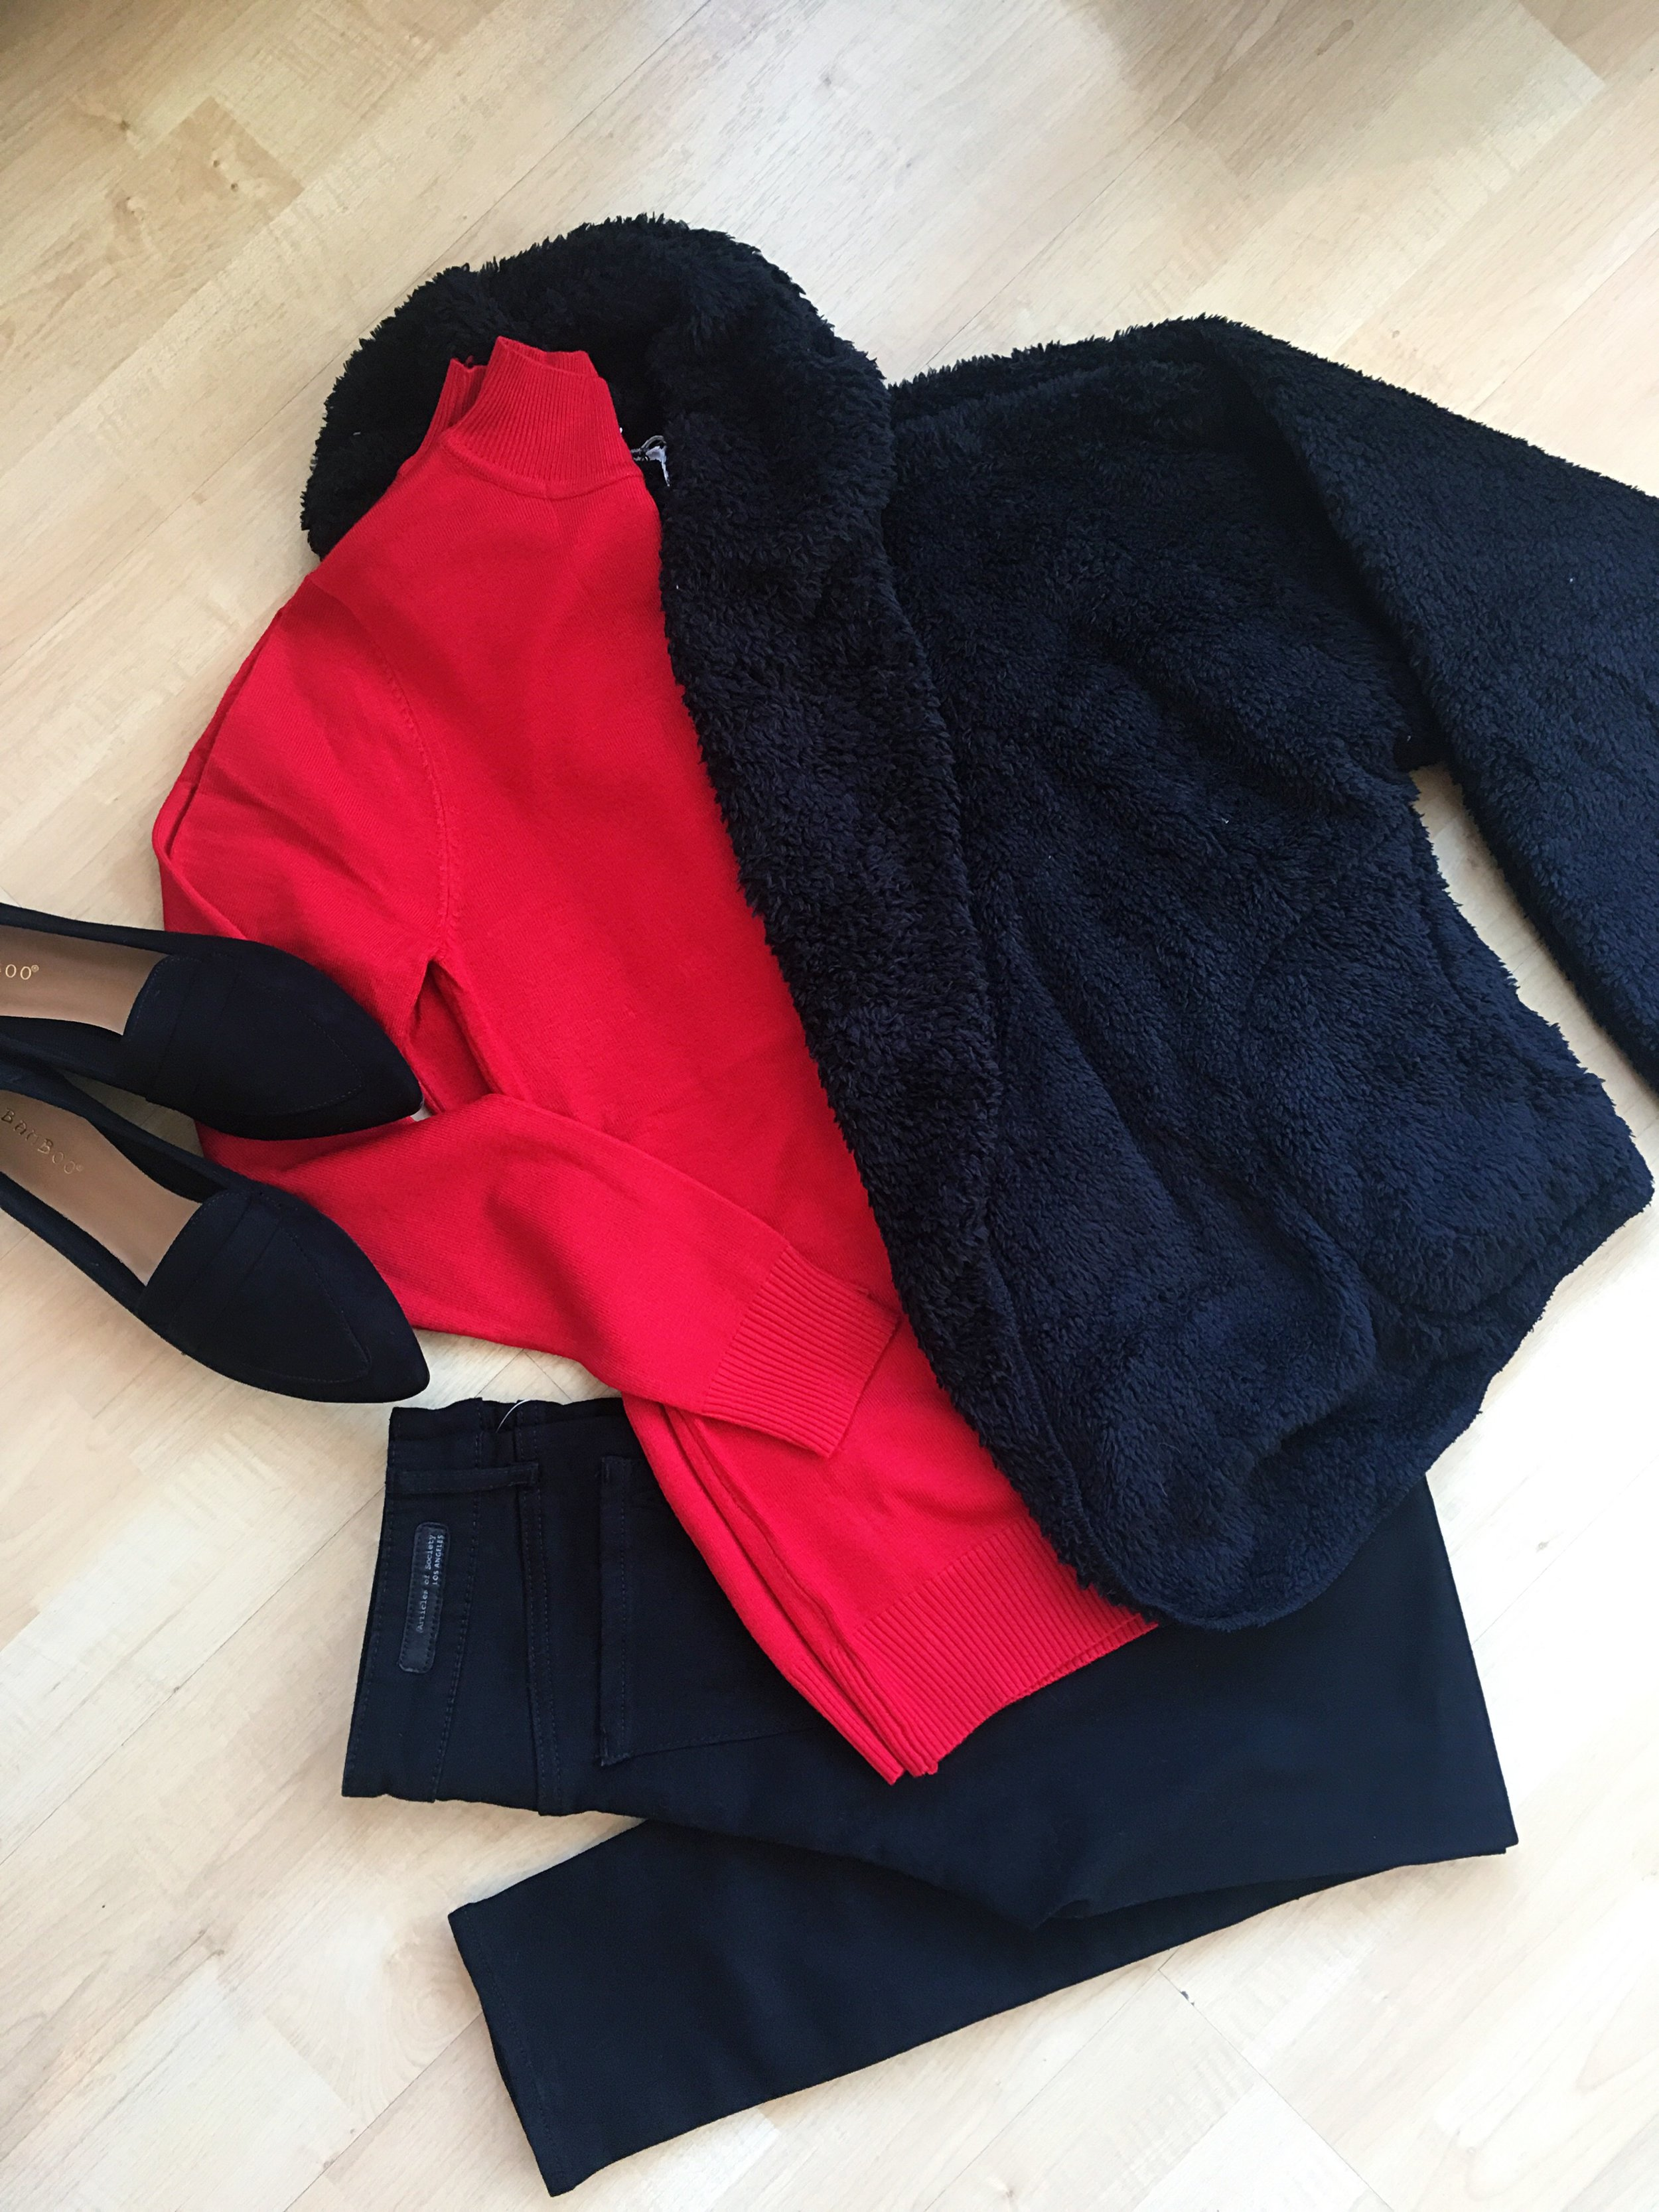 We just got these fuzzy sweater jackets in - we have them in black and gray. So soft and so cozy!